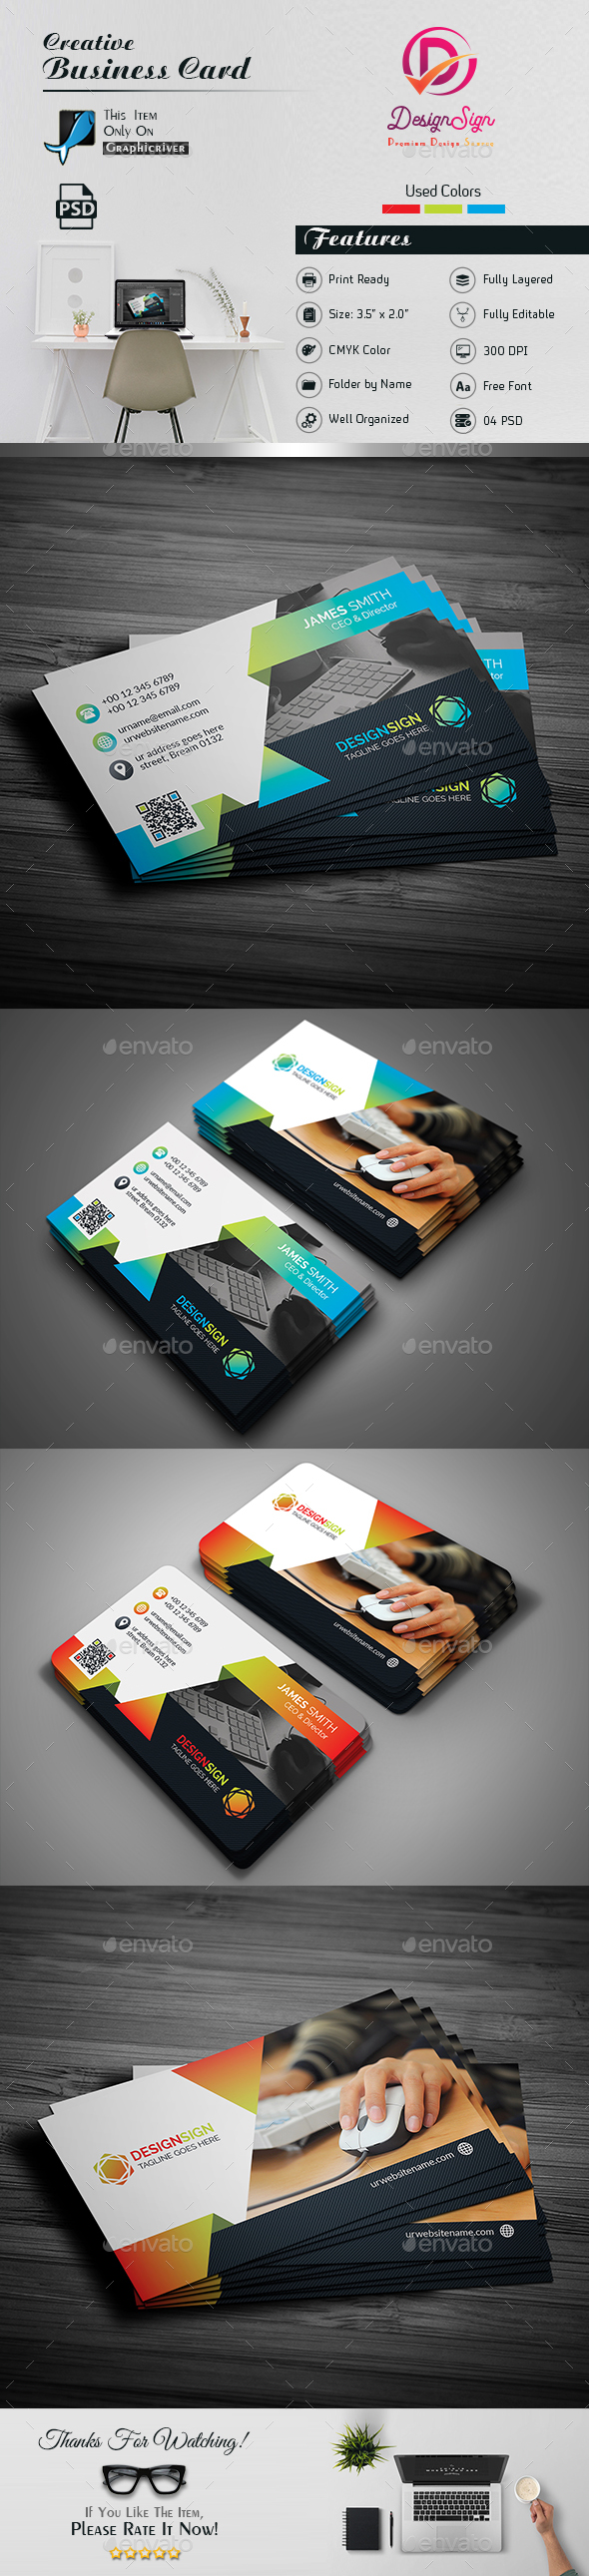 Attractive Business Card by DesignSign | GraphicRiver